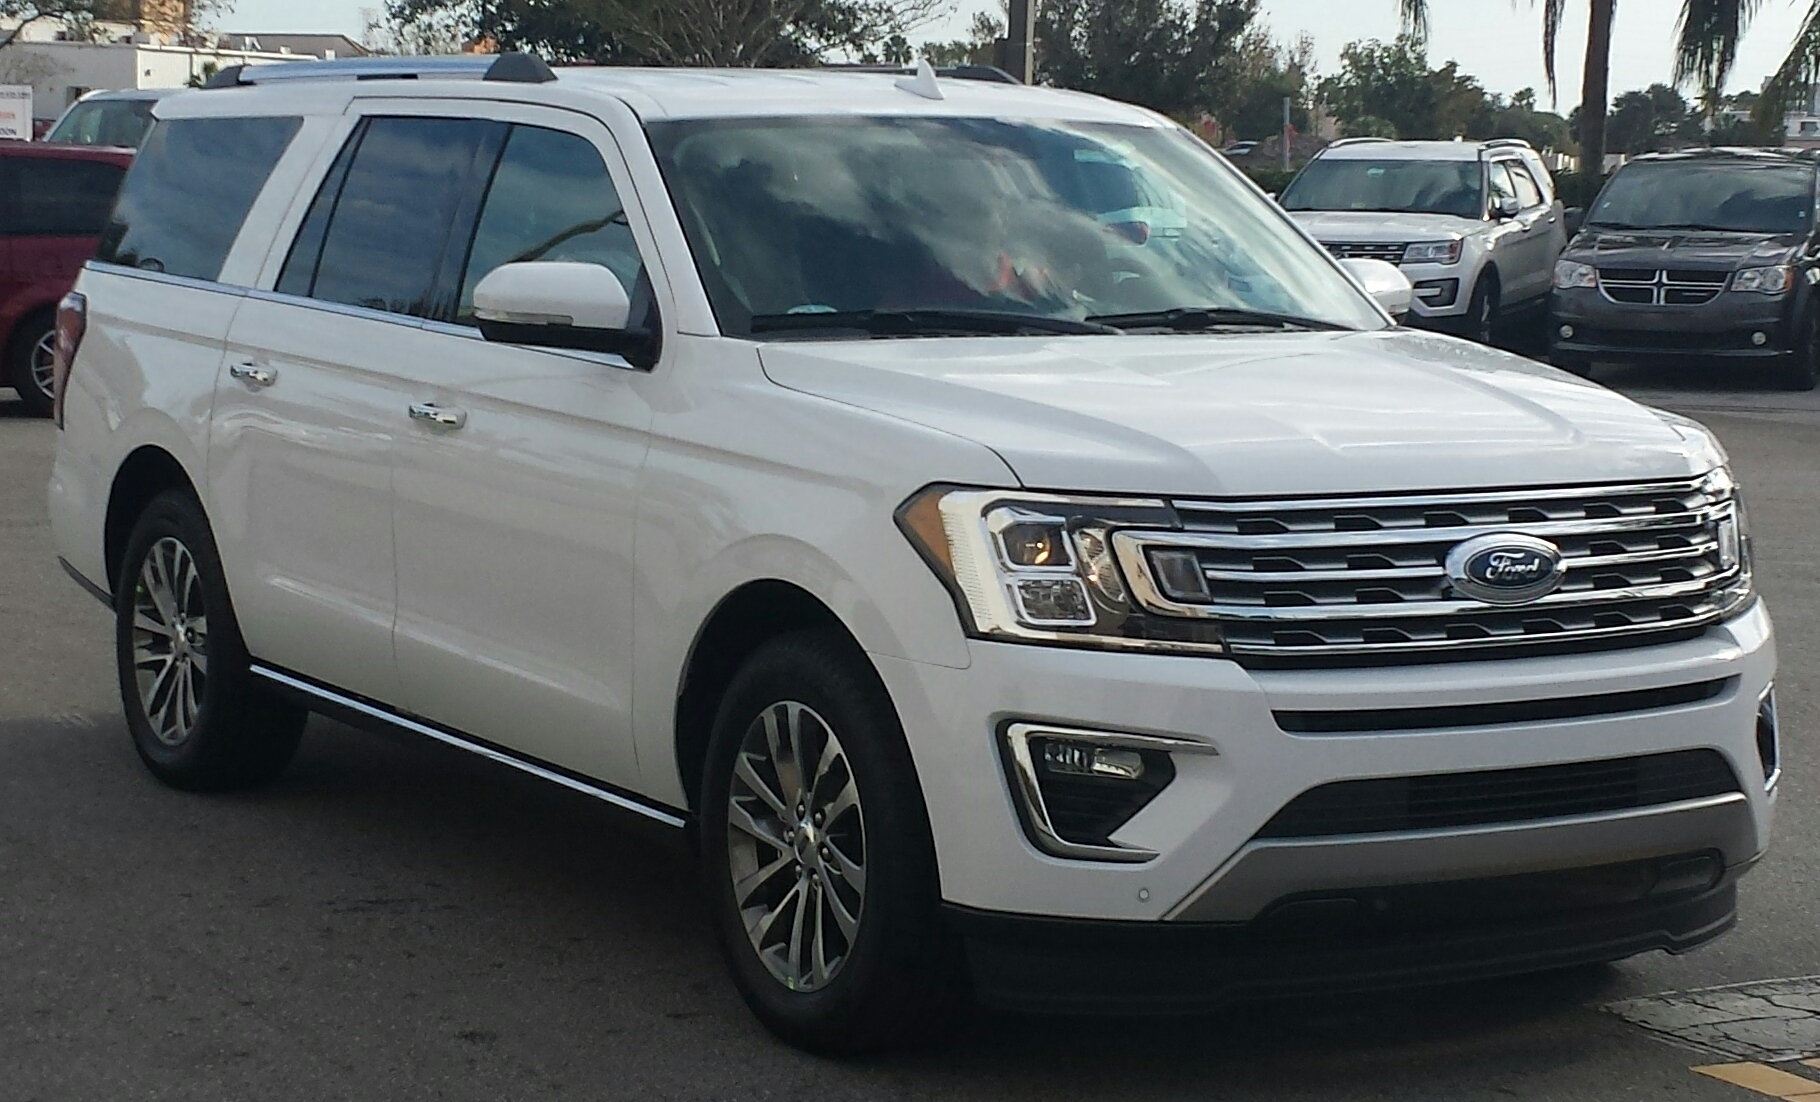 18 ford expedition max jpg